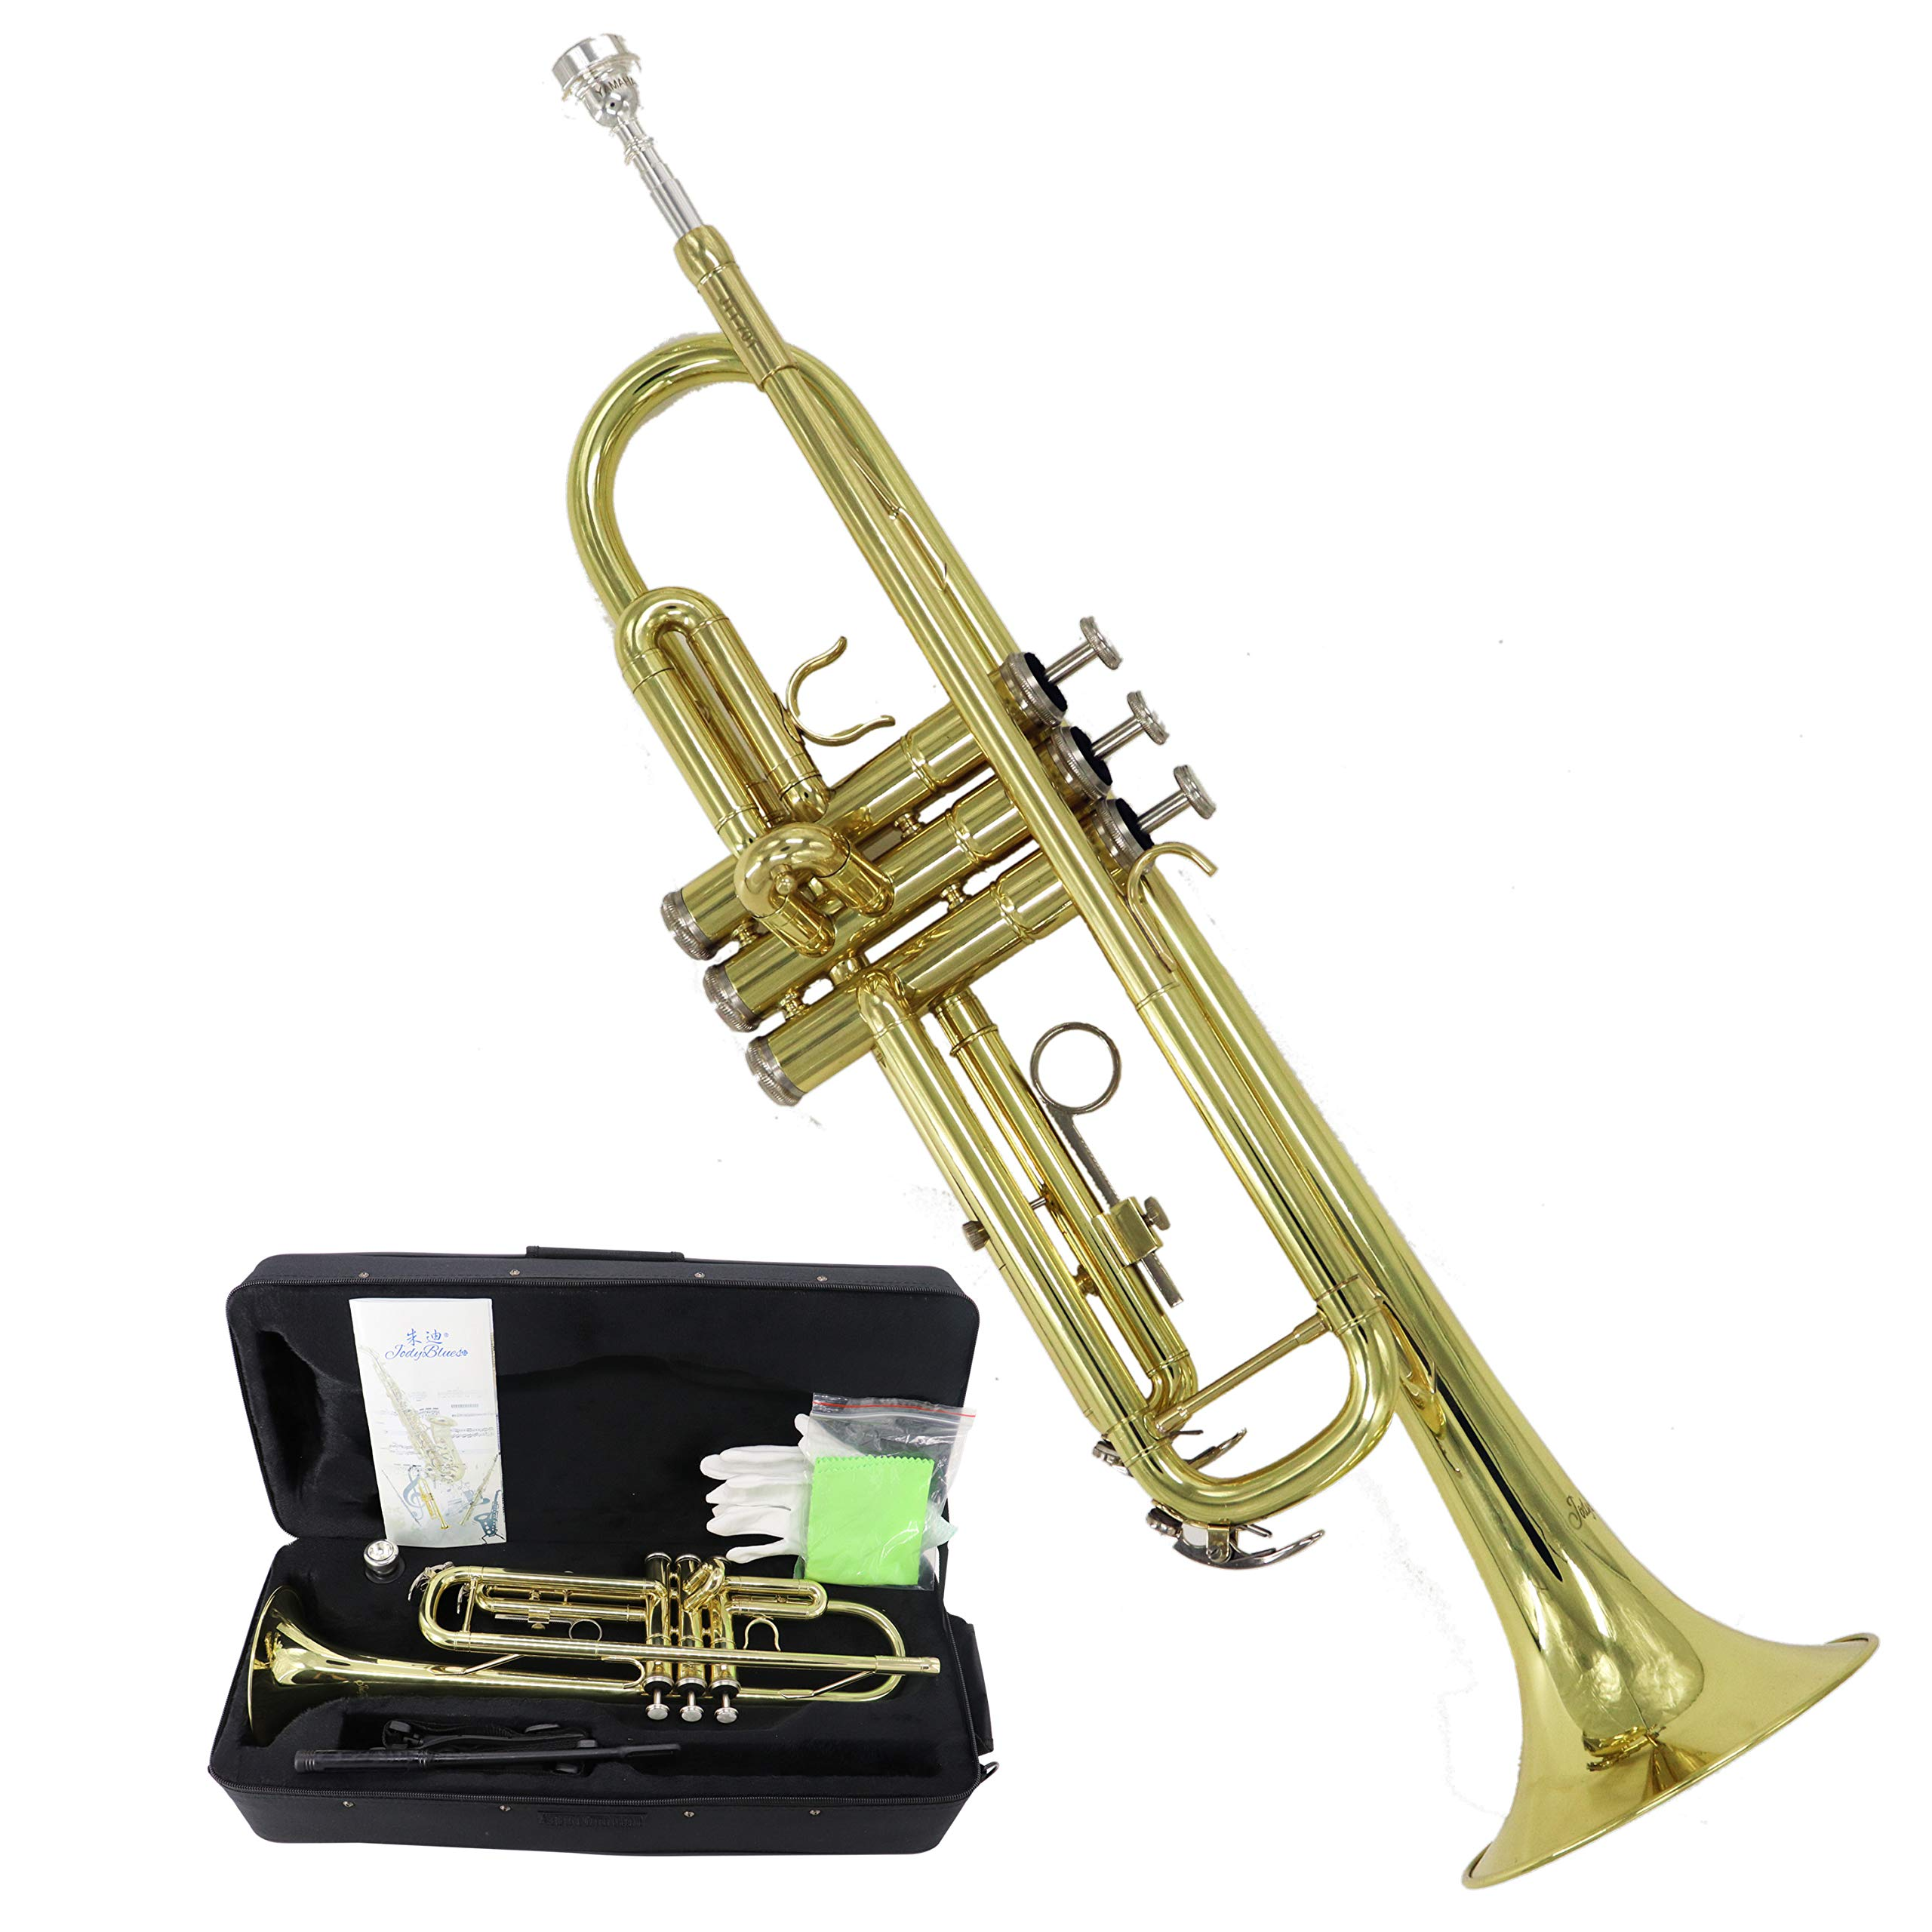 Jody Blues Bb Trumpet Brass JTT-701 with Durable Deluxe Case and 1 Year Warranty,Gold Lacquer